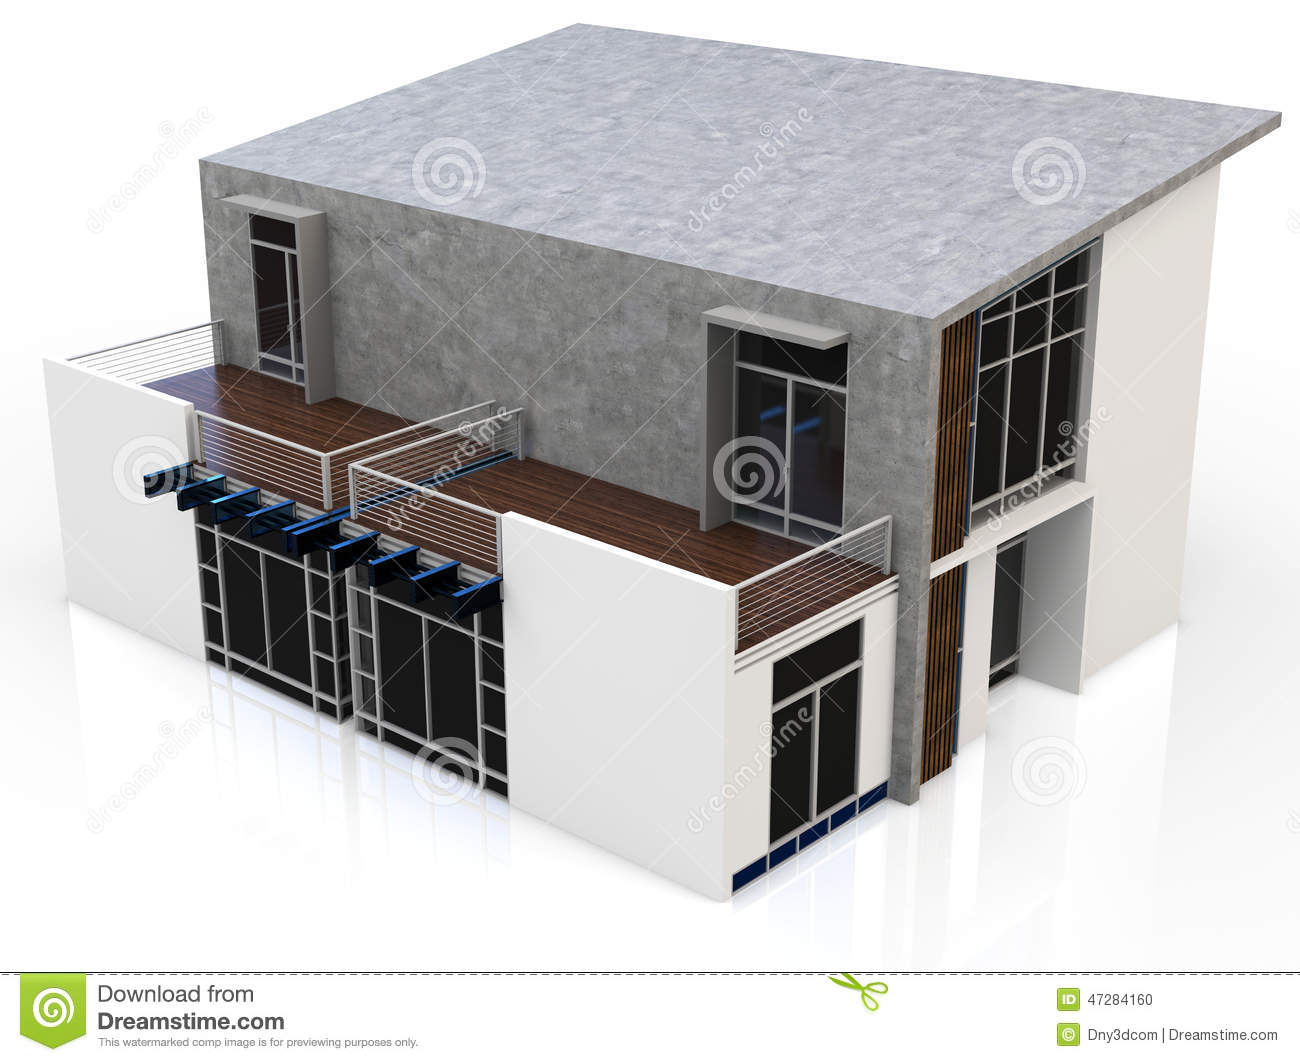 Maison 3d duplex moderne illustration stock image du for Maison duplex plan